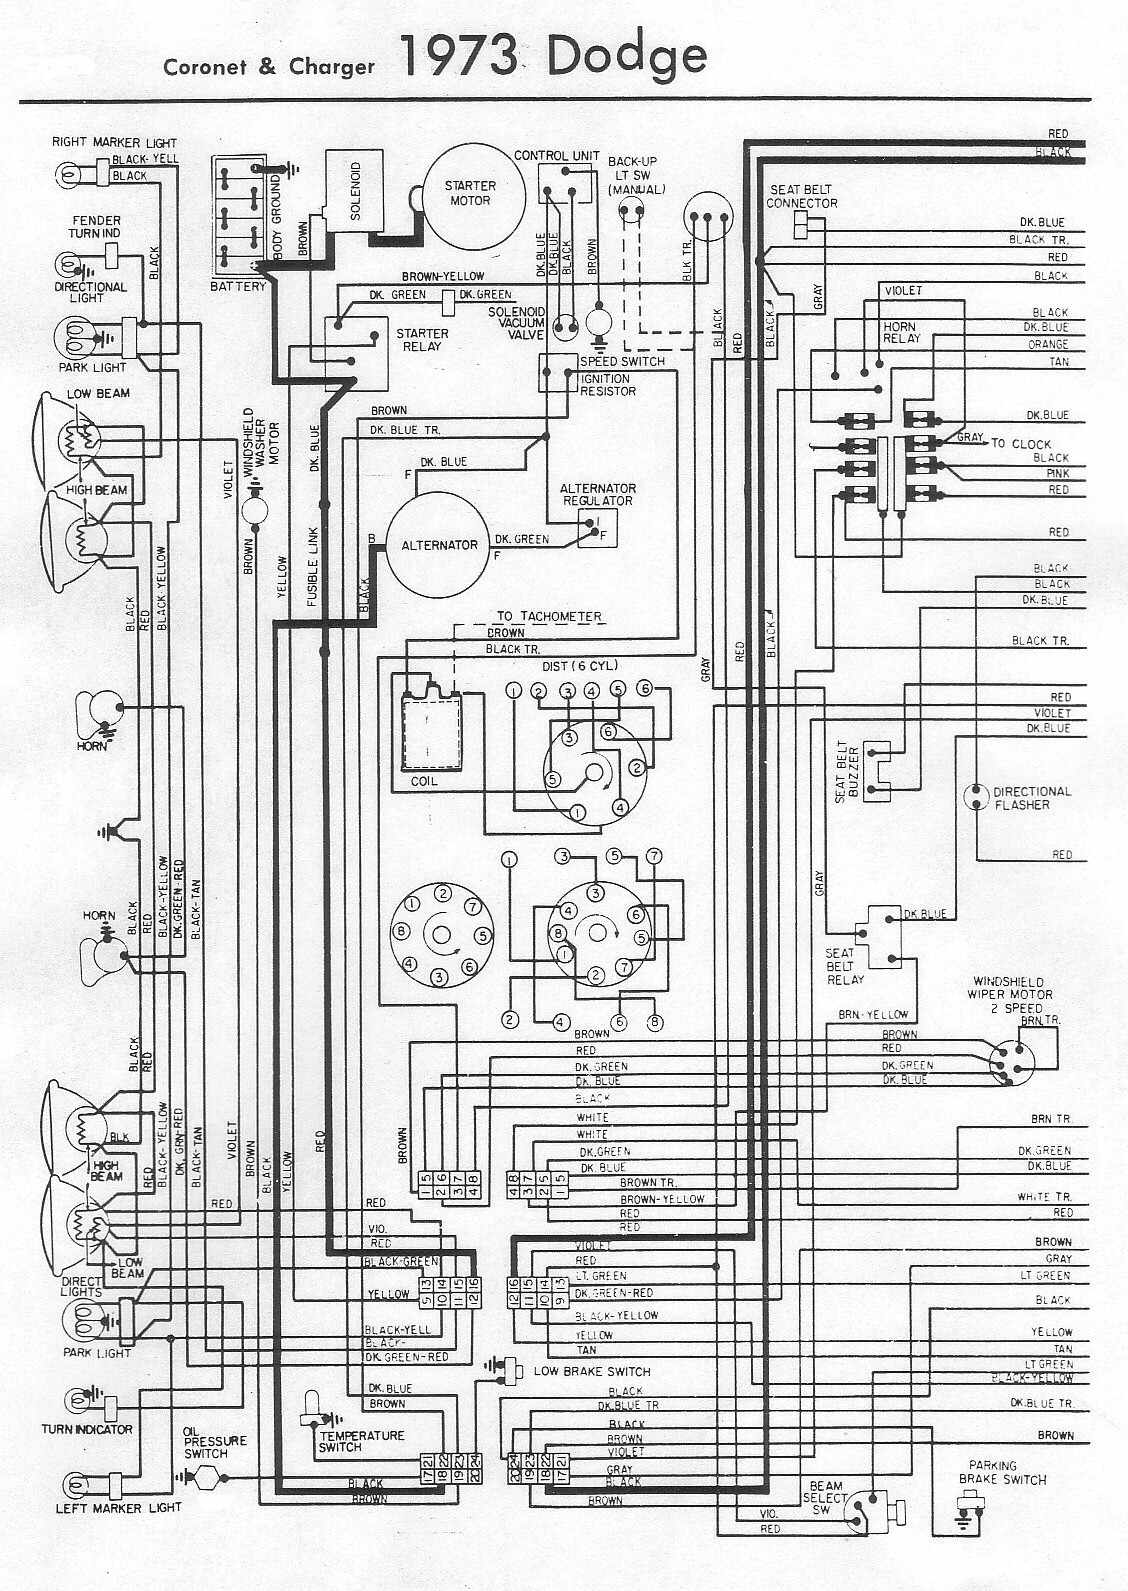 Electrical Wiring Diagram Of Dodge Coro  And Charger also Ford Solenoid Into A Chevy Hot Rod Forum Hotrodders Bulletin Board Of Ford Starter Solenoid Wiring Diagram together with Dodge Coro furthermore C Db A also C Corvette Headlight Wiring Diagram C Free Wiring Diagrams Inside Corvette Headlight Wiring Diagram. on diagrams for 1973 charger